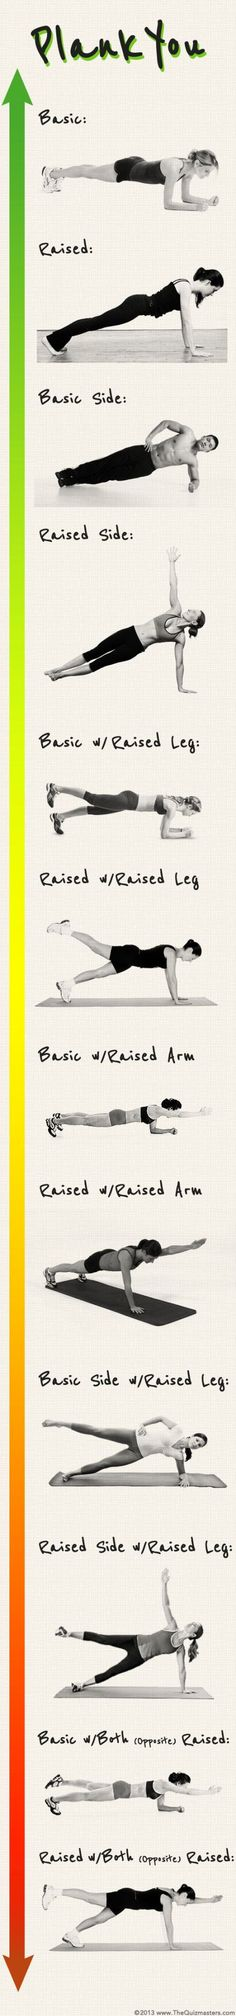 Plank You! Plank exercises, tips and tricks #exercise #sweat